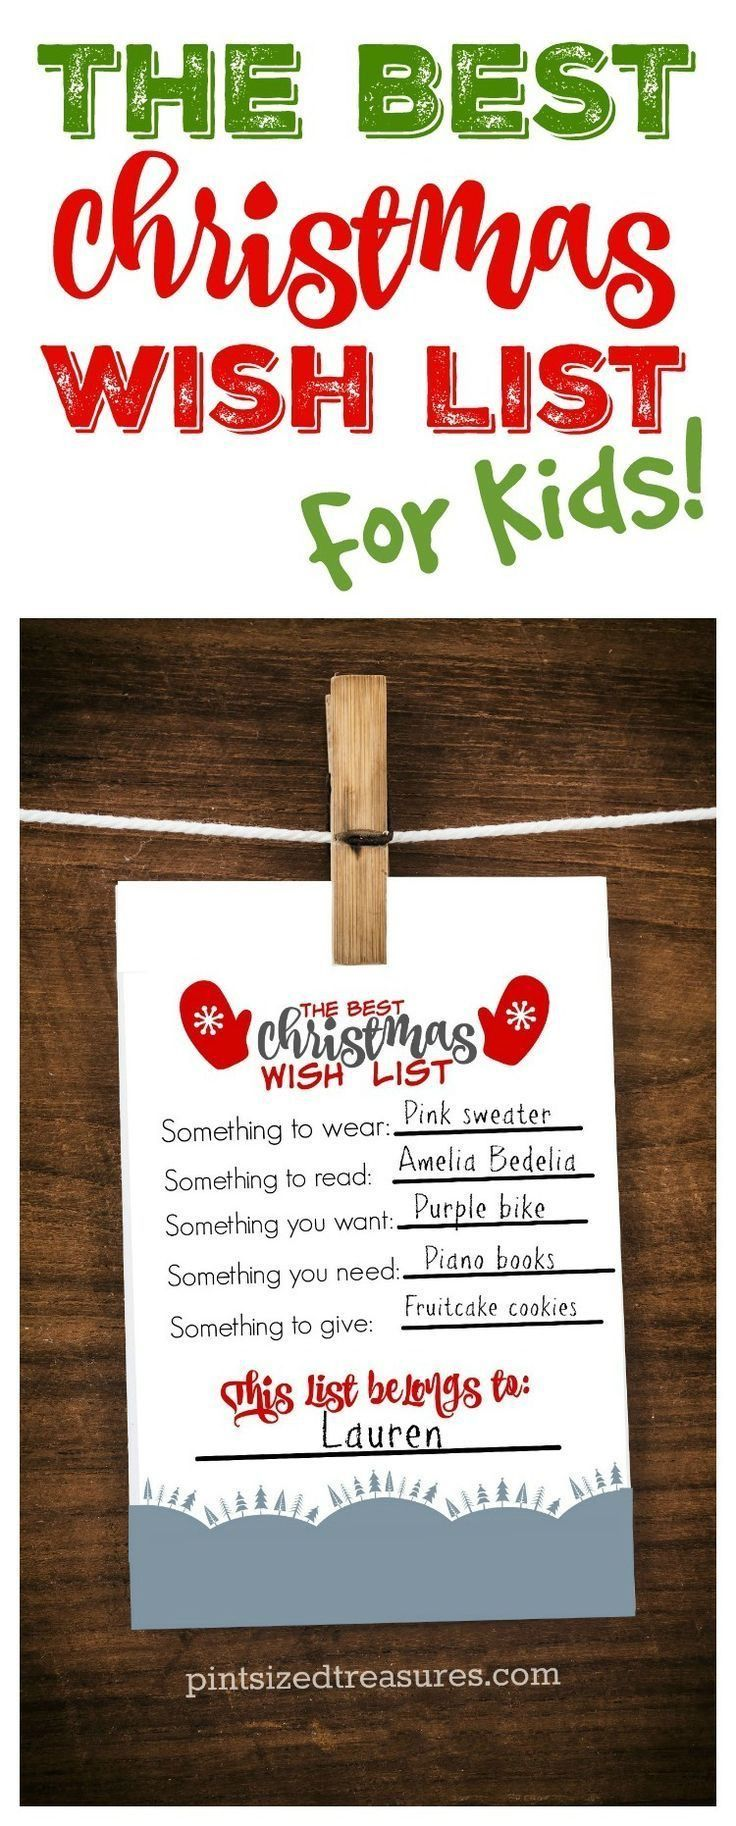 Pin by Kayleah Granados on Christmas.! Christmas wishes